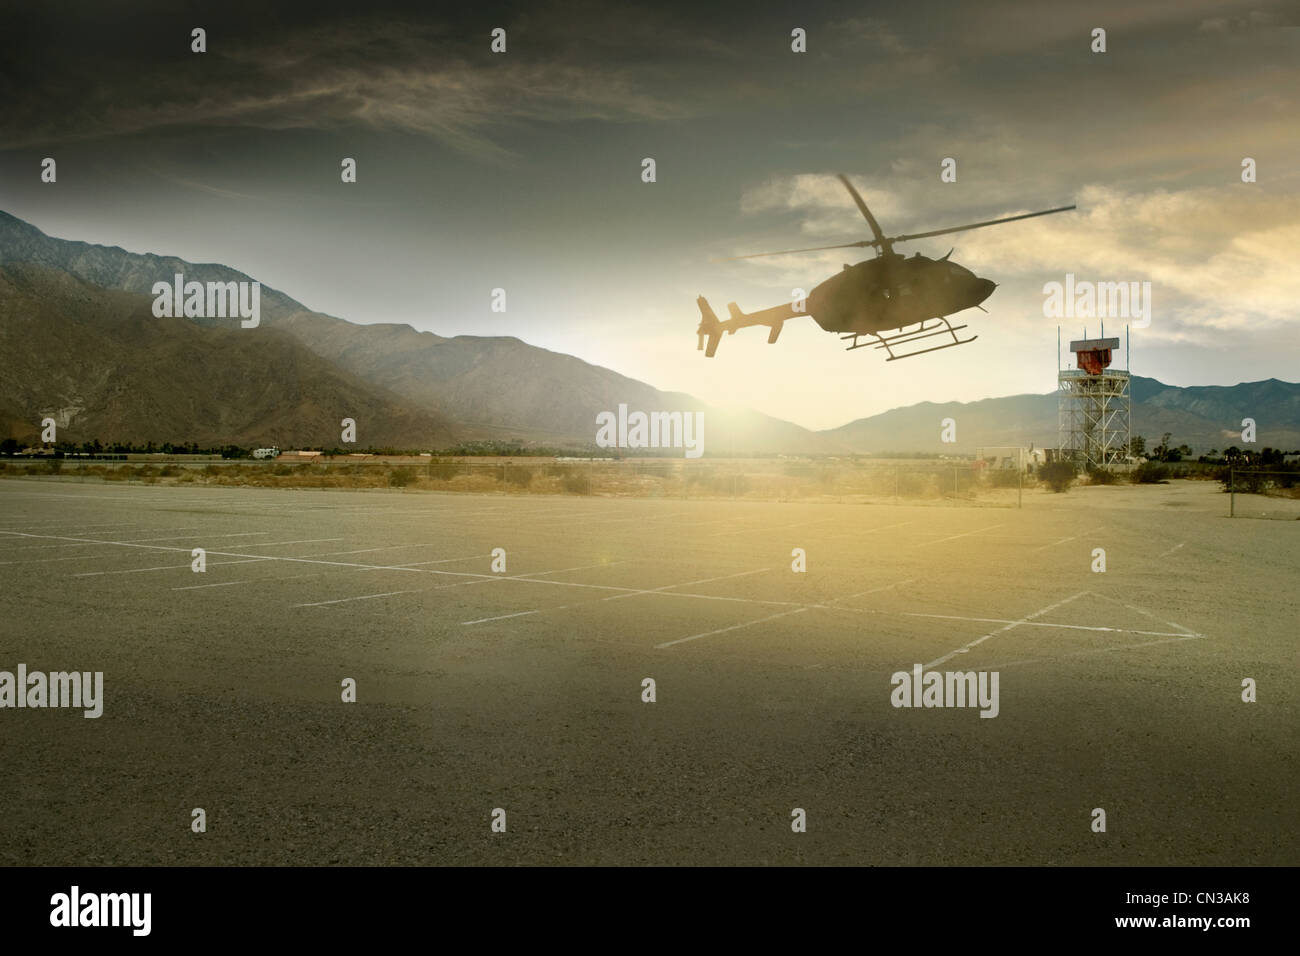 Helicopter landing in Palm Springs, California, USA - Stock Image